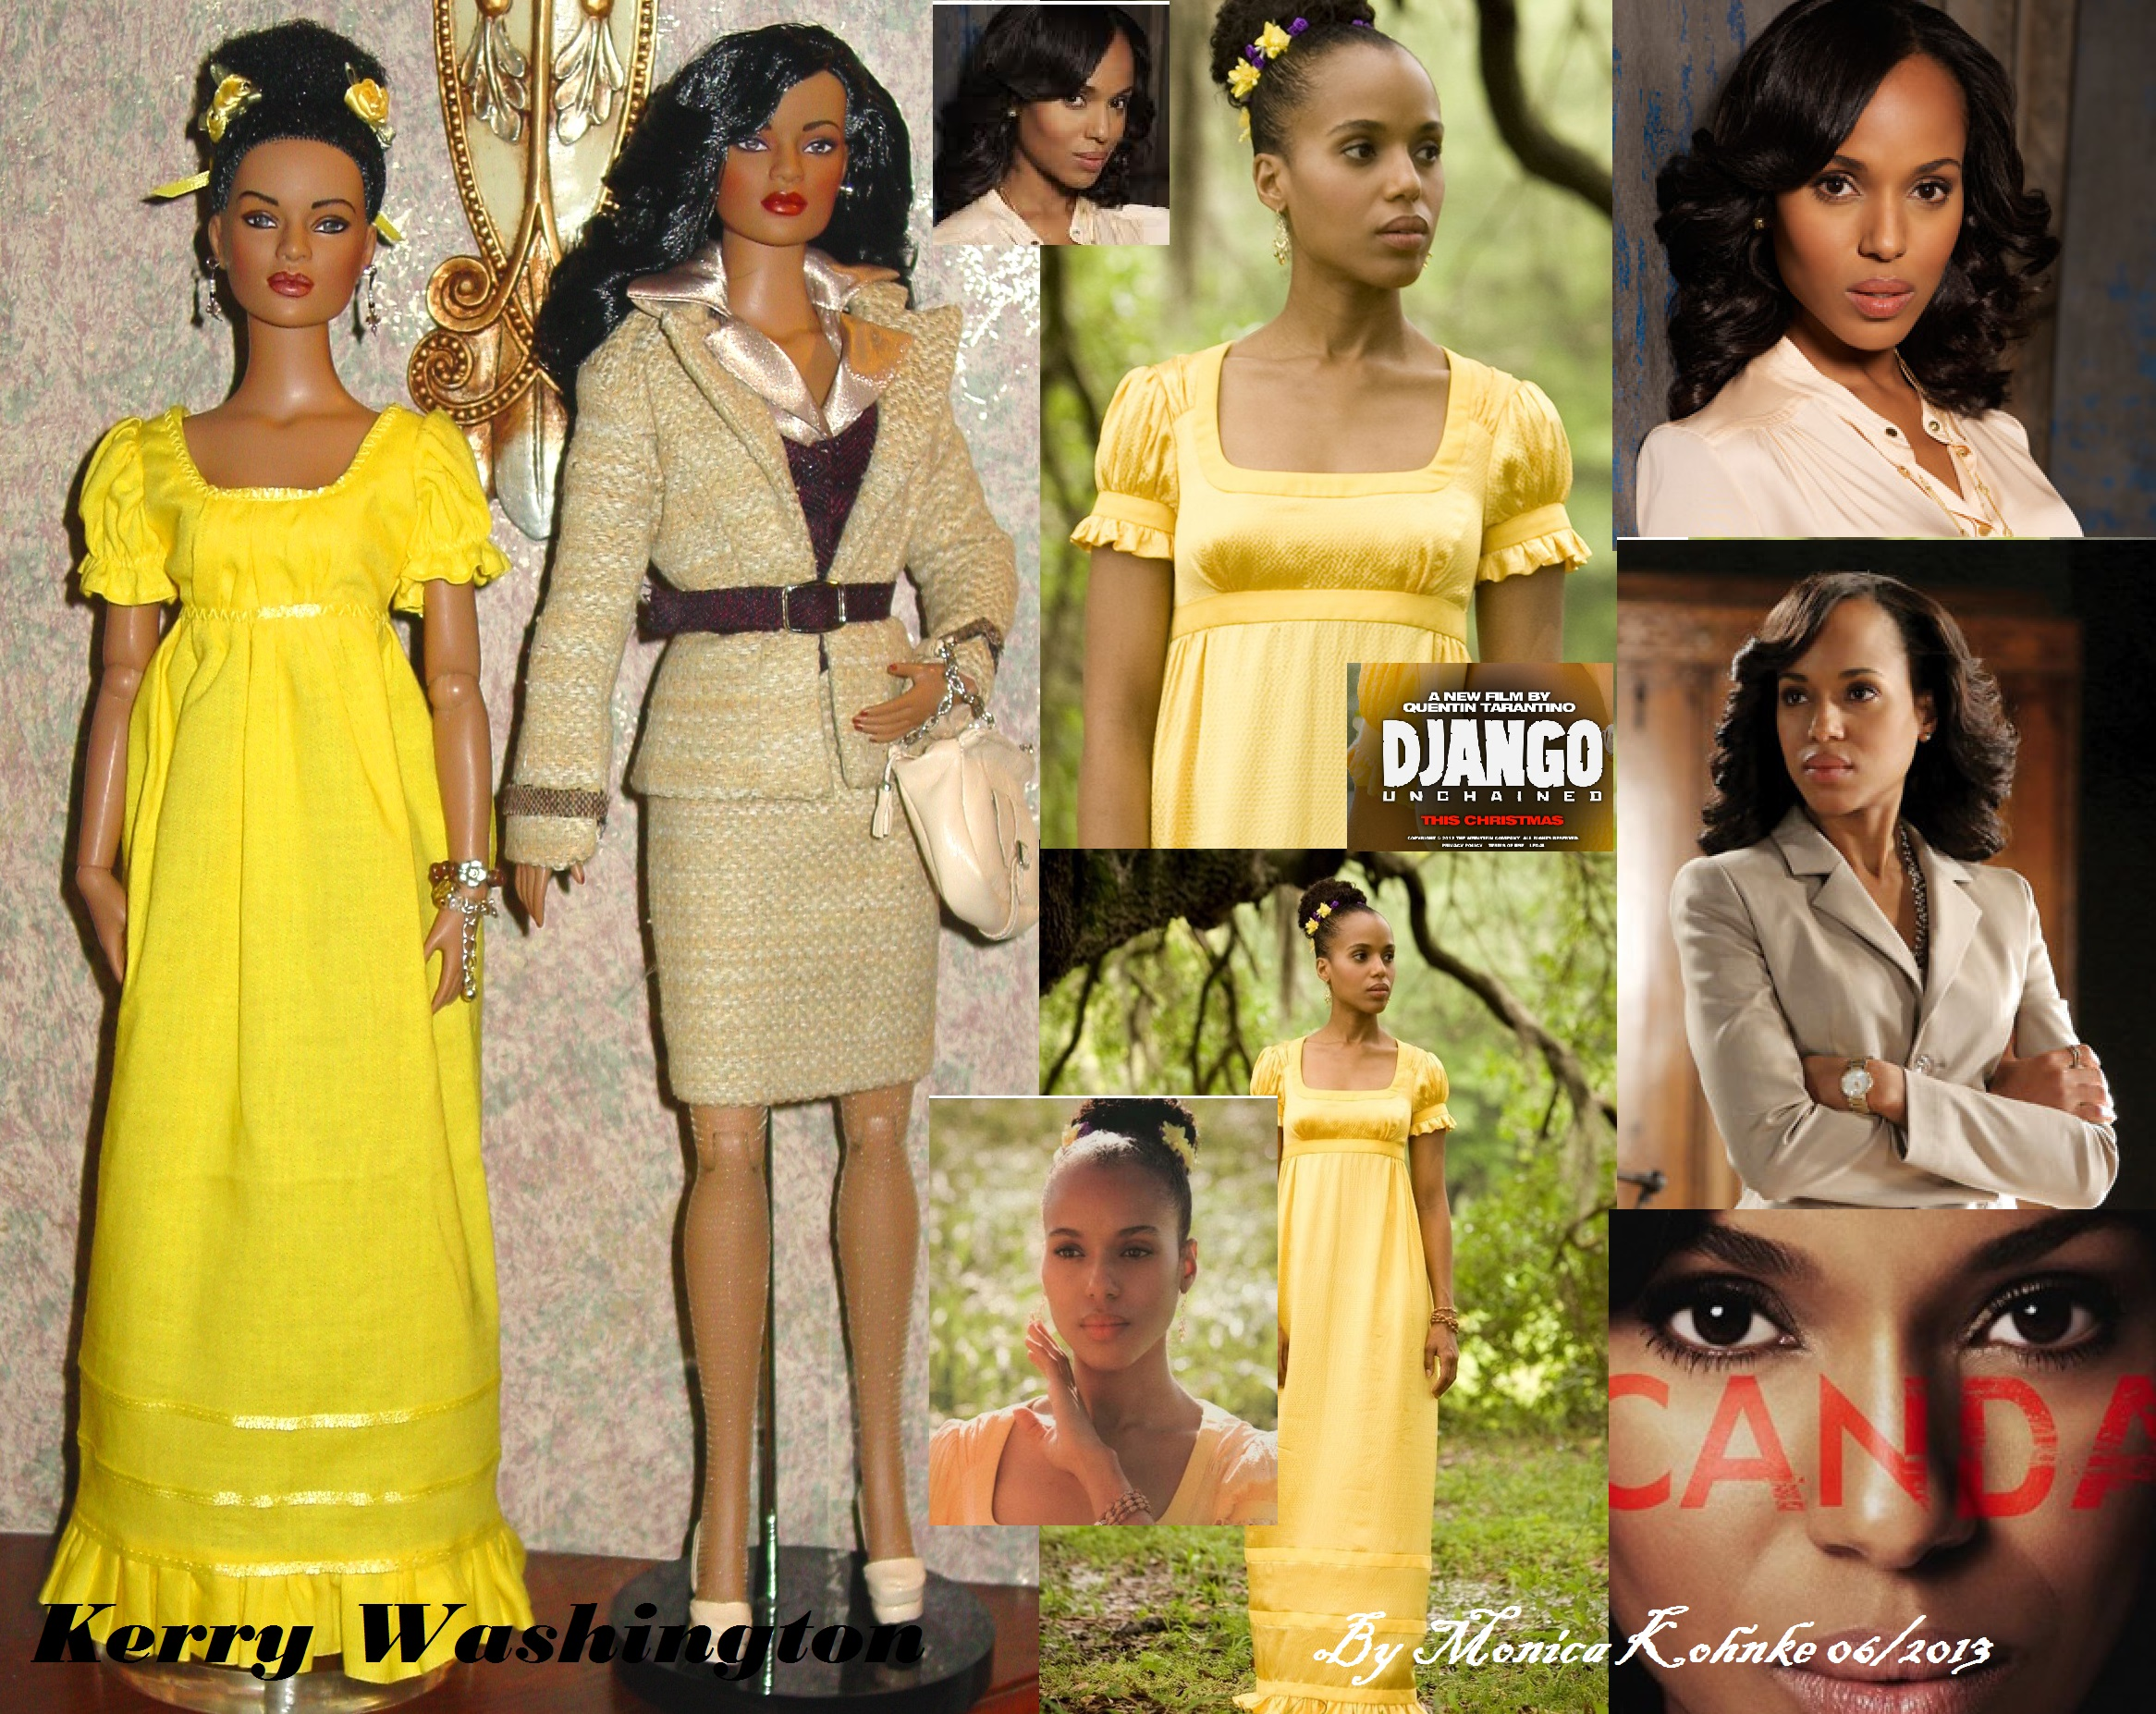 Kerry Washington Scandal and Django